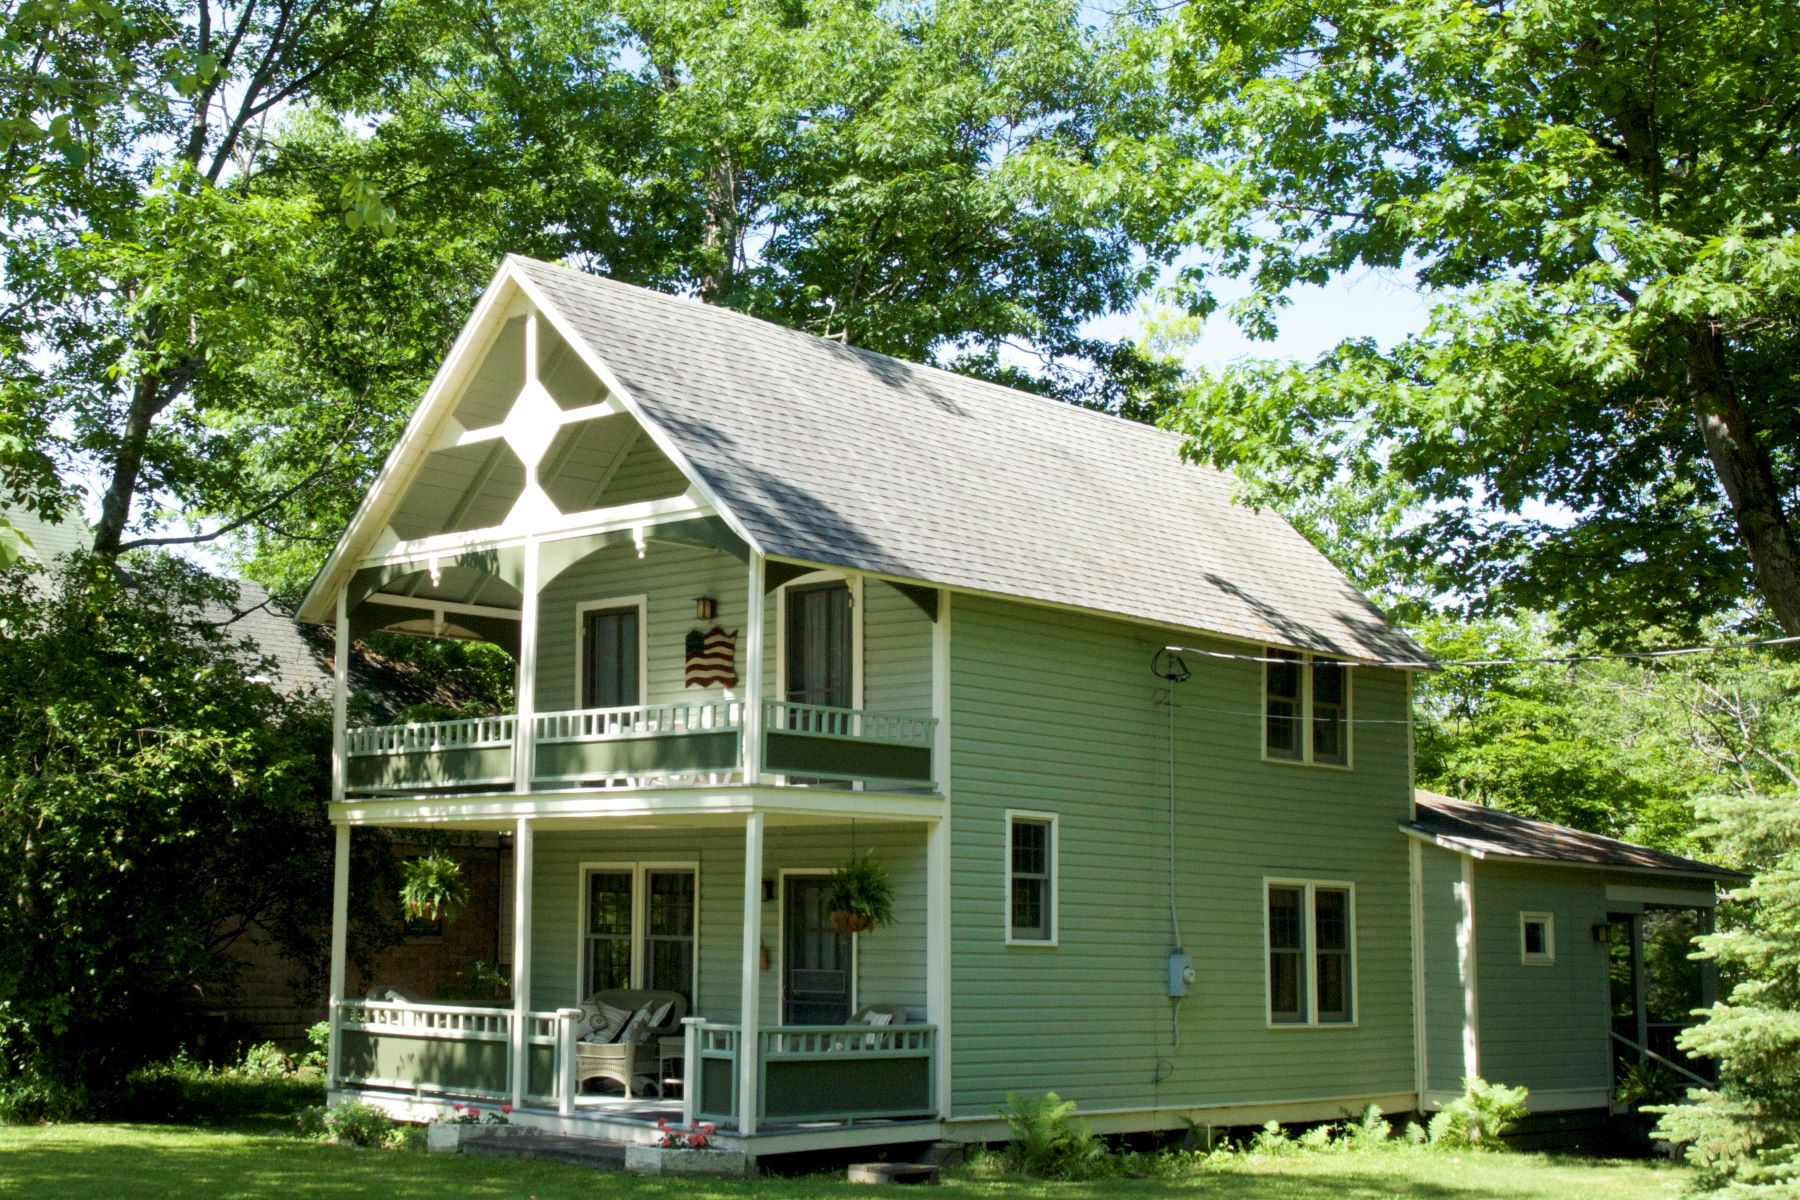 Single Family Homes for Sale at Historic Thousand Island Park 1573 Park Avenue Orleans, New York 13692 United States